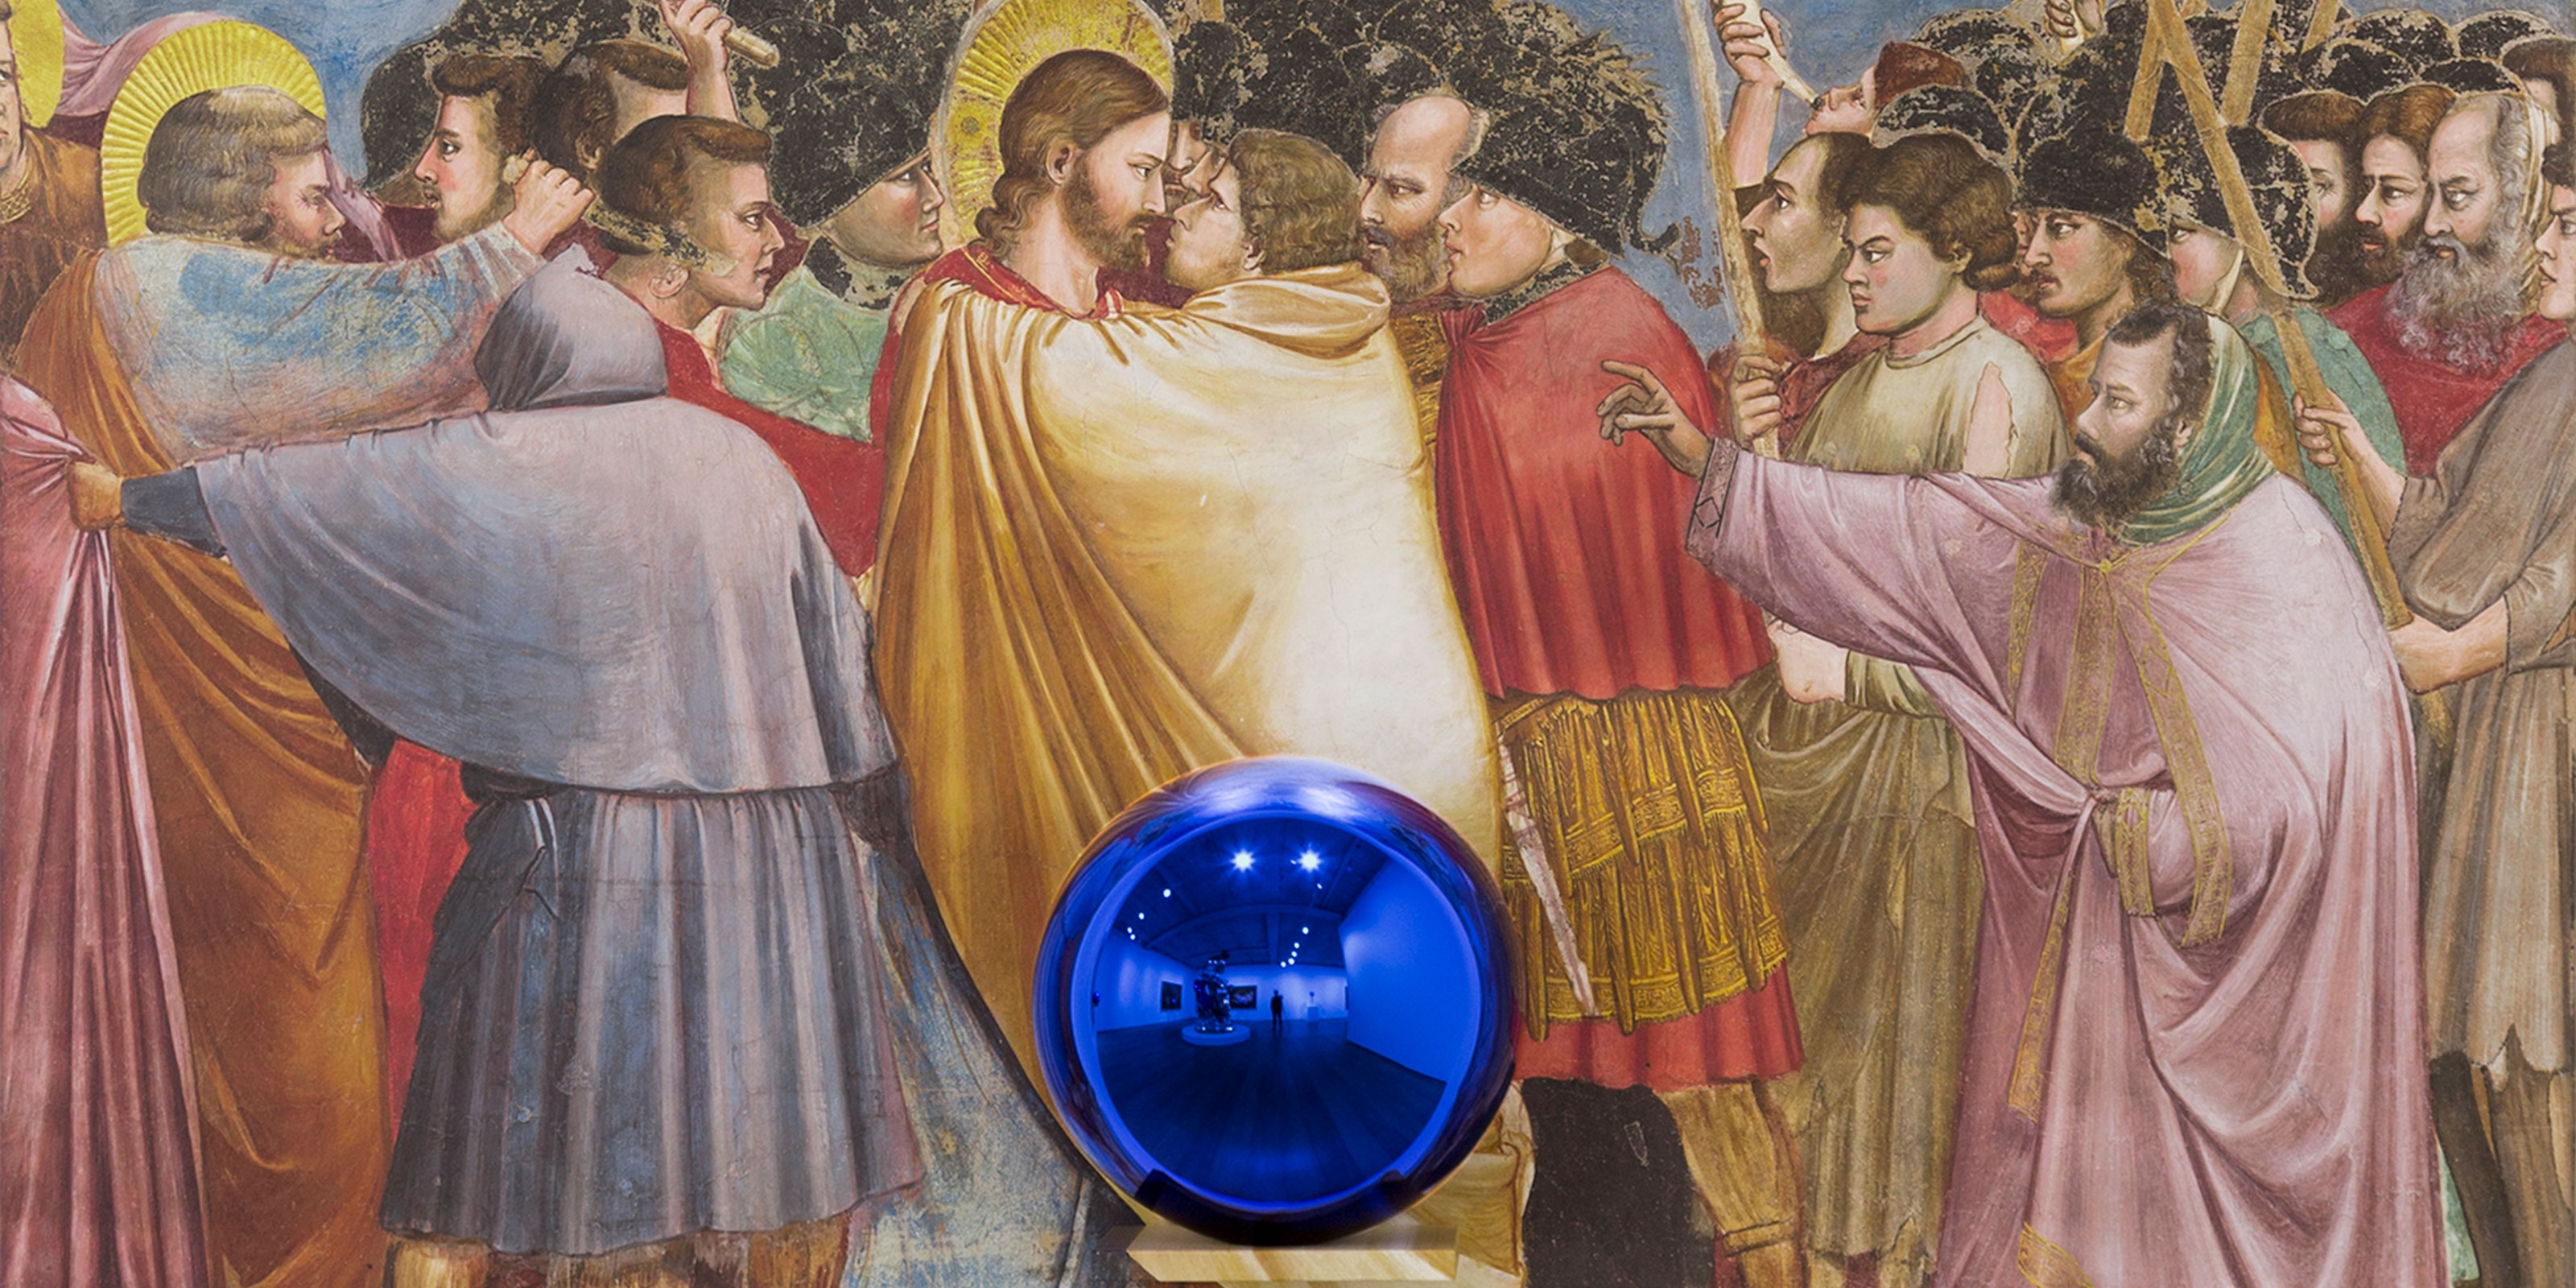 A sculpture by Jeff Koons, titled Gazing Ball (Giotto The Kiss of Judas), dated 2015-2016.